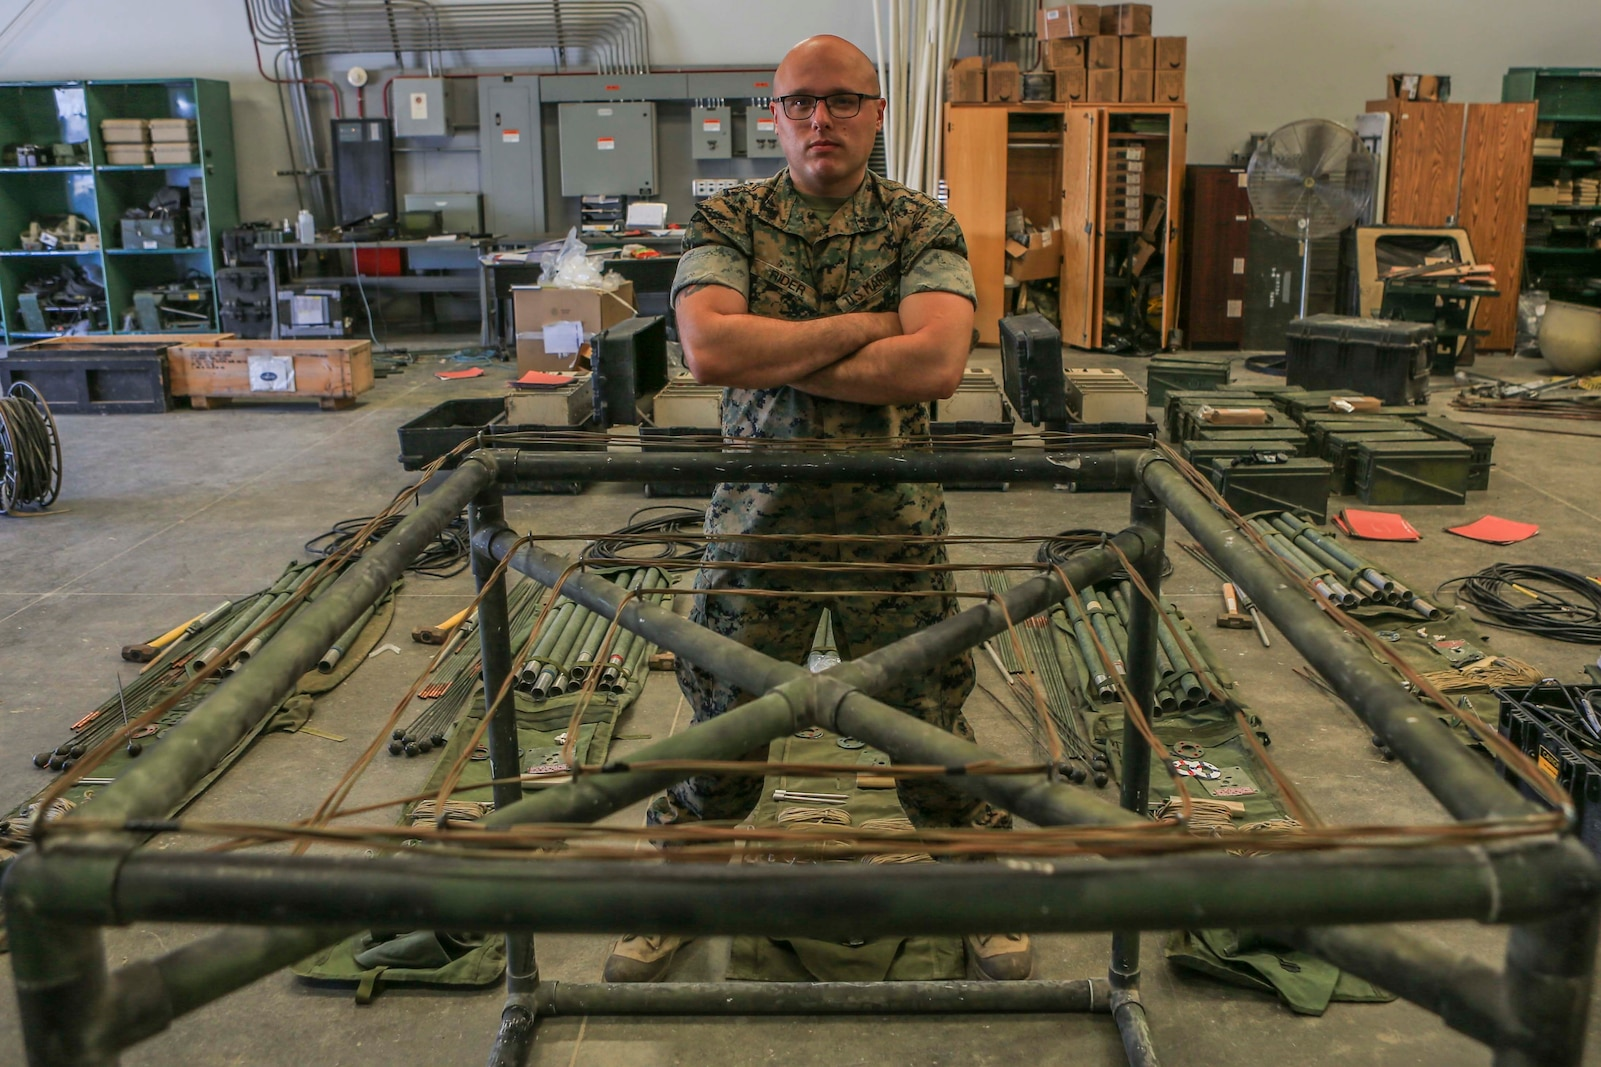 Cpl. Cameron Rider, a radio operator with Combat Logistics Regiment 1, 1st Marine Logistics Group, shows off his award winning antenna design after winning the 1st MLG Innovation Award, on Camp Pendleton, California, July 17, 2020. For his innovation, Rider utilized his previous experience and knowledge of constructing field-expedient antennas in his fabrication of a low-cost, vehicle-mounted antenna capable of maintaining on-the-move communication. (U.S. Marine Corps photo by Lance Cpl. Ulises Salgado)